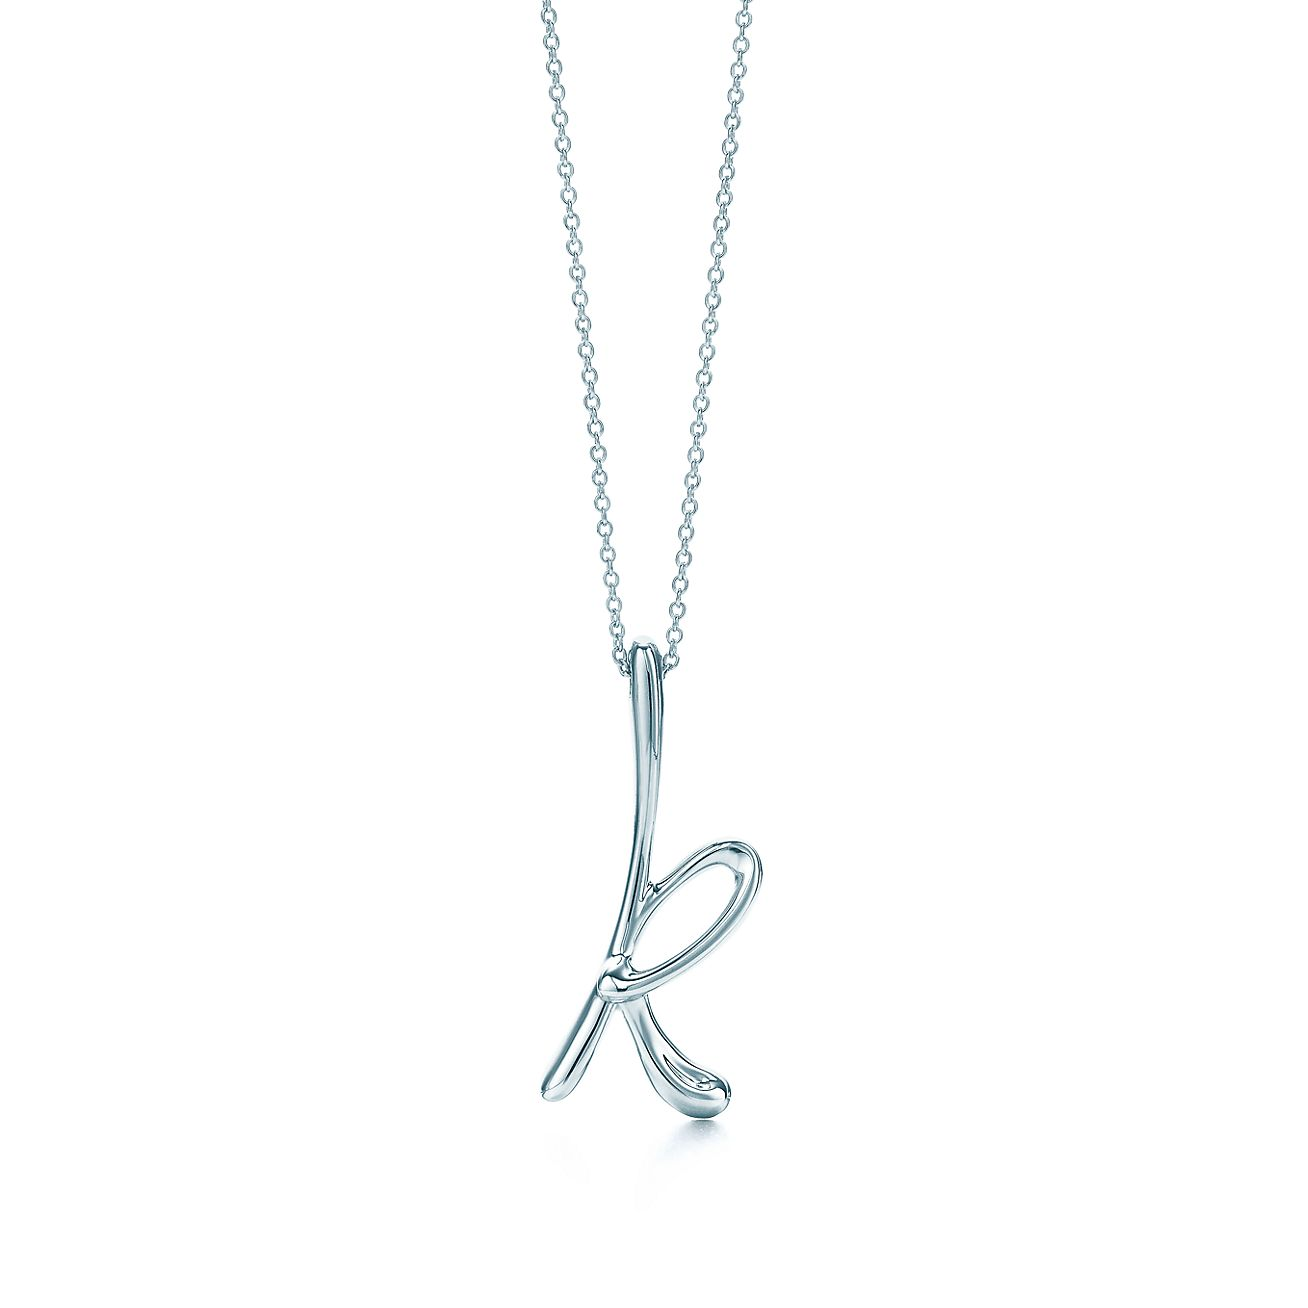 Elsa Peretti letter Y pendant in sterling silver, small - Size Y Tiffany & Co.